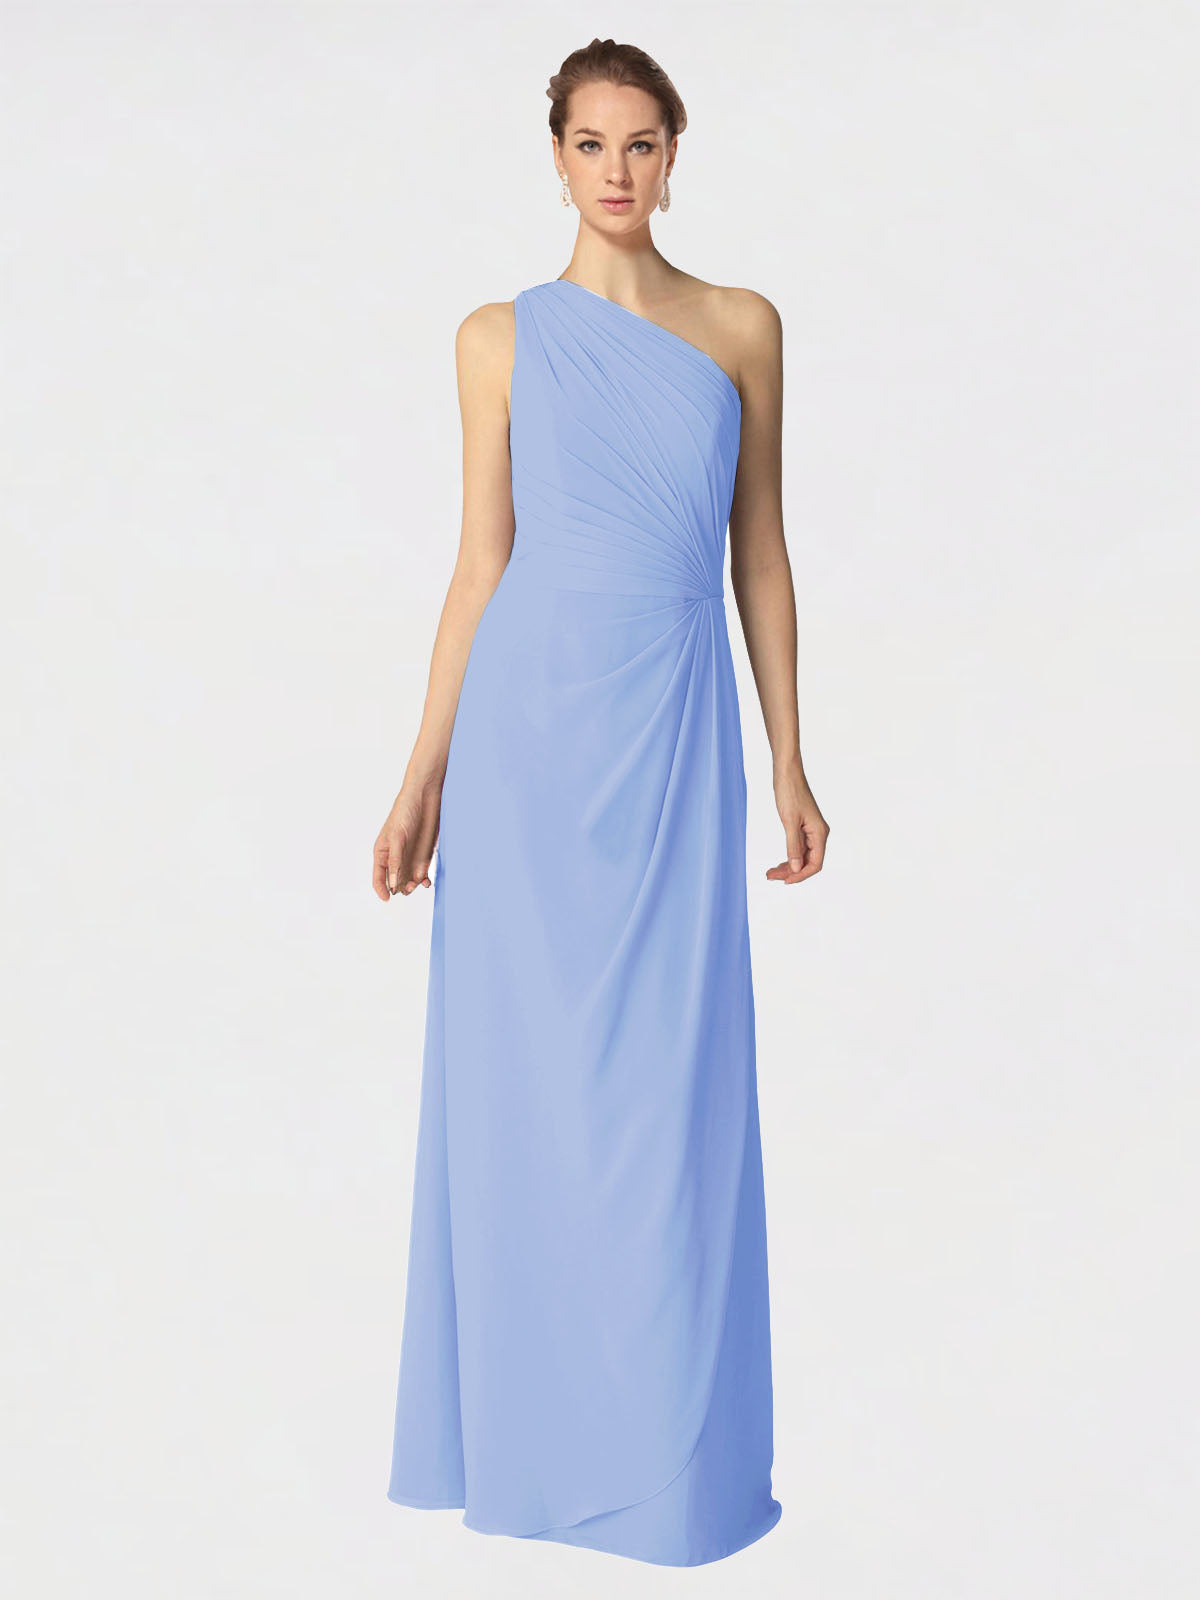 Long A-Line One Shoulder Sleeveless Lavender Chiffon Bridesmaid Dress Aurora